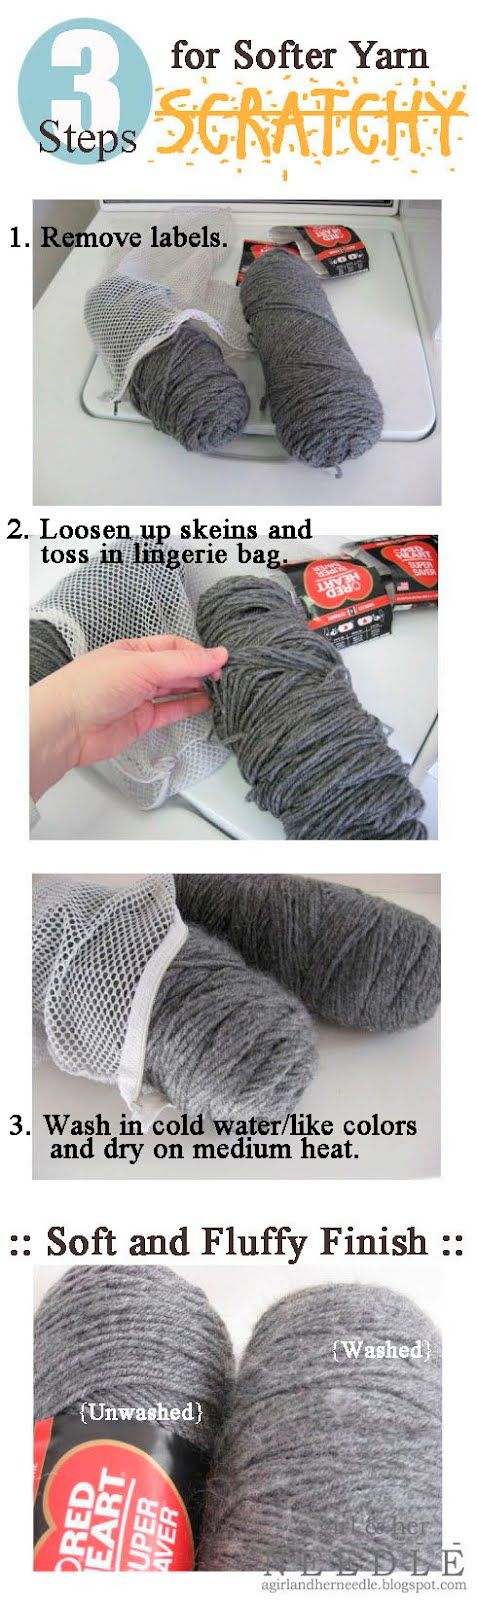 softer yarn. goin to have to try this